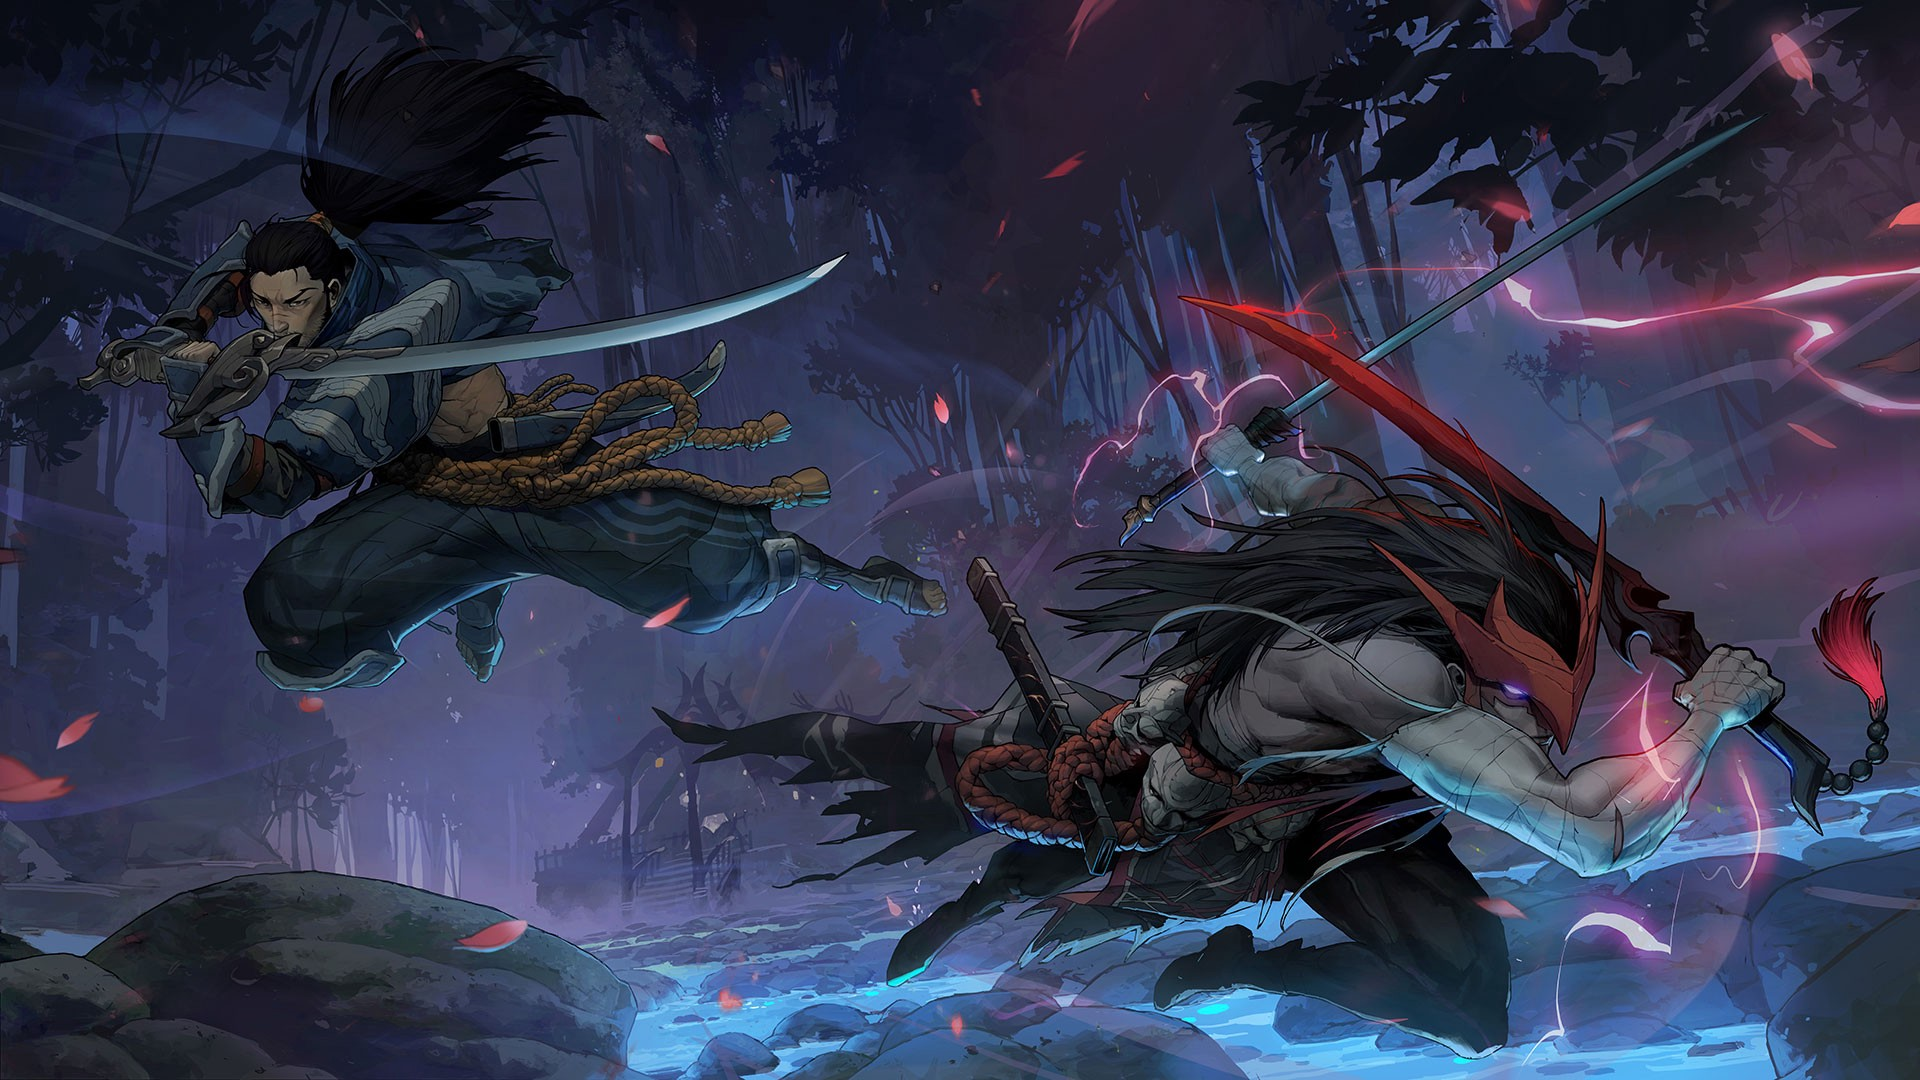 New League of Legends champion Yone and his abilities revealed.